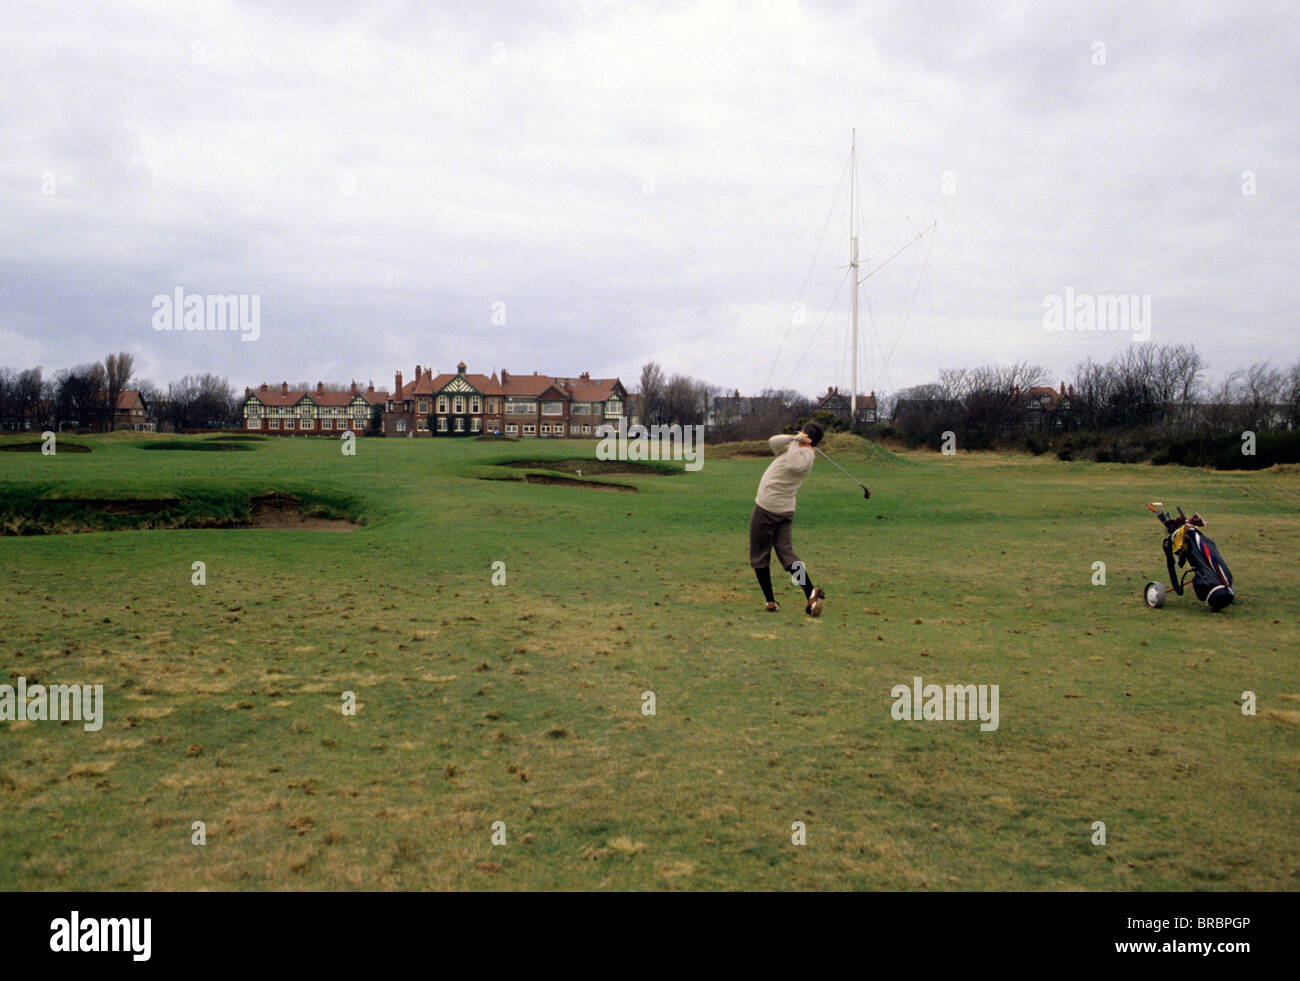 Golfer in plus-fours hits a long approach shot to the green - Stock Image